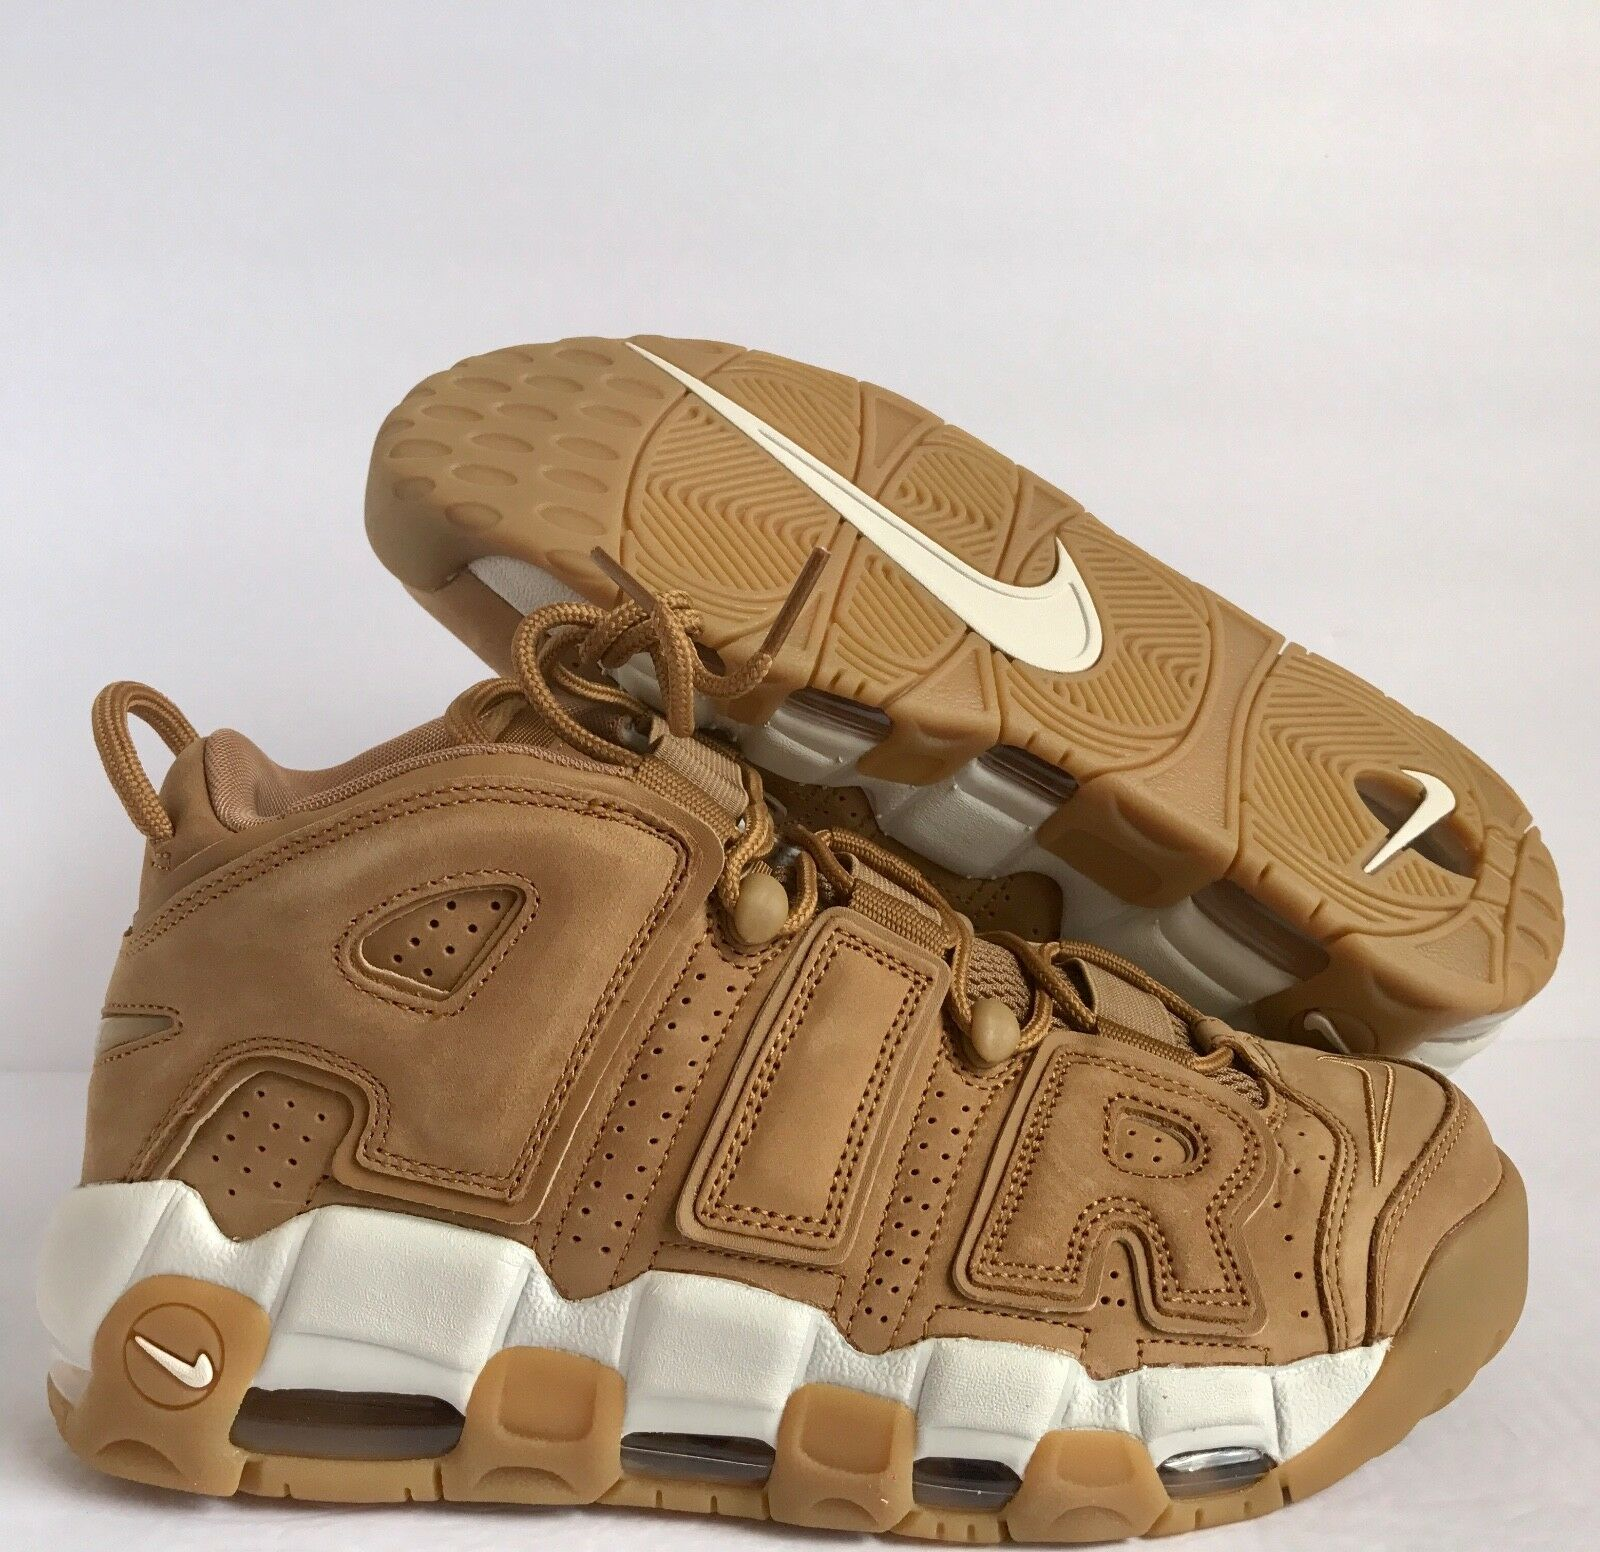 NIKE AIR MORE UPTEMPO '96 PRM WHEAT FLAX/FLAX-PHANTOM SZ 12